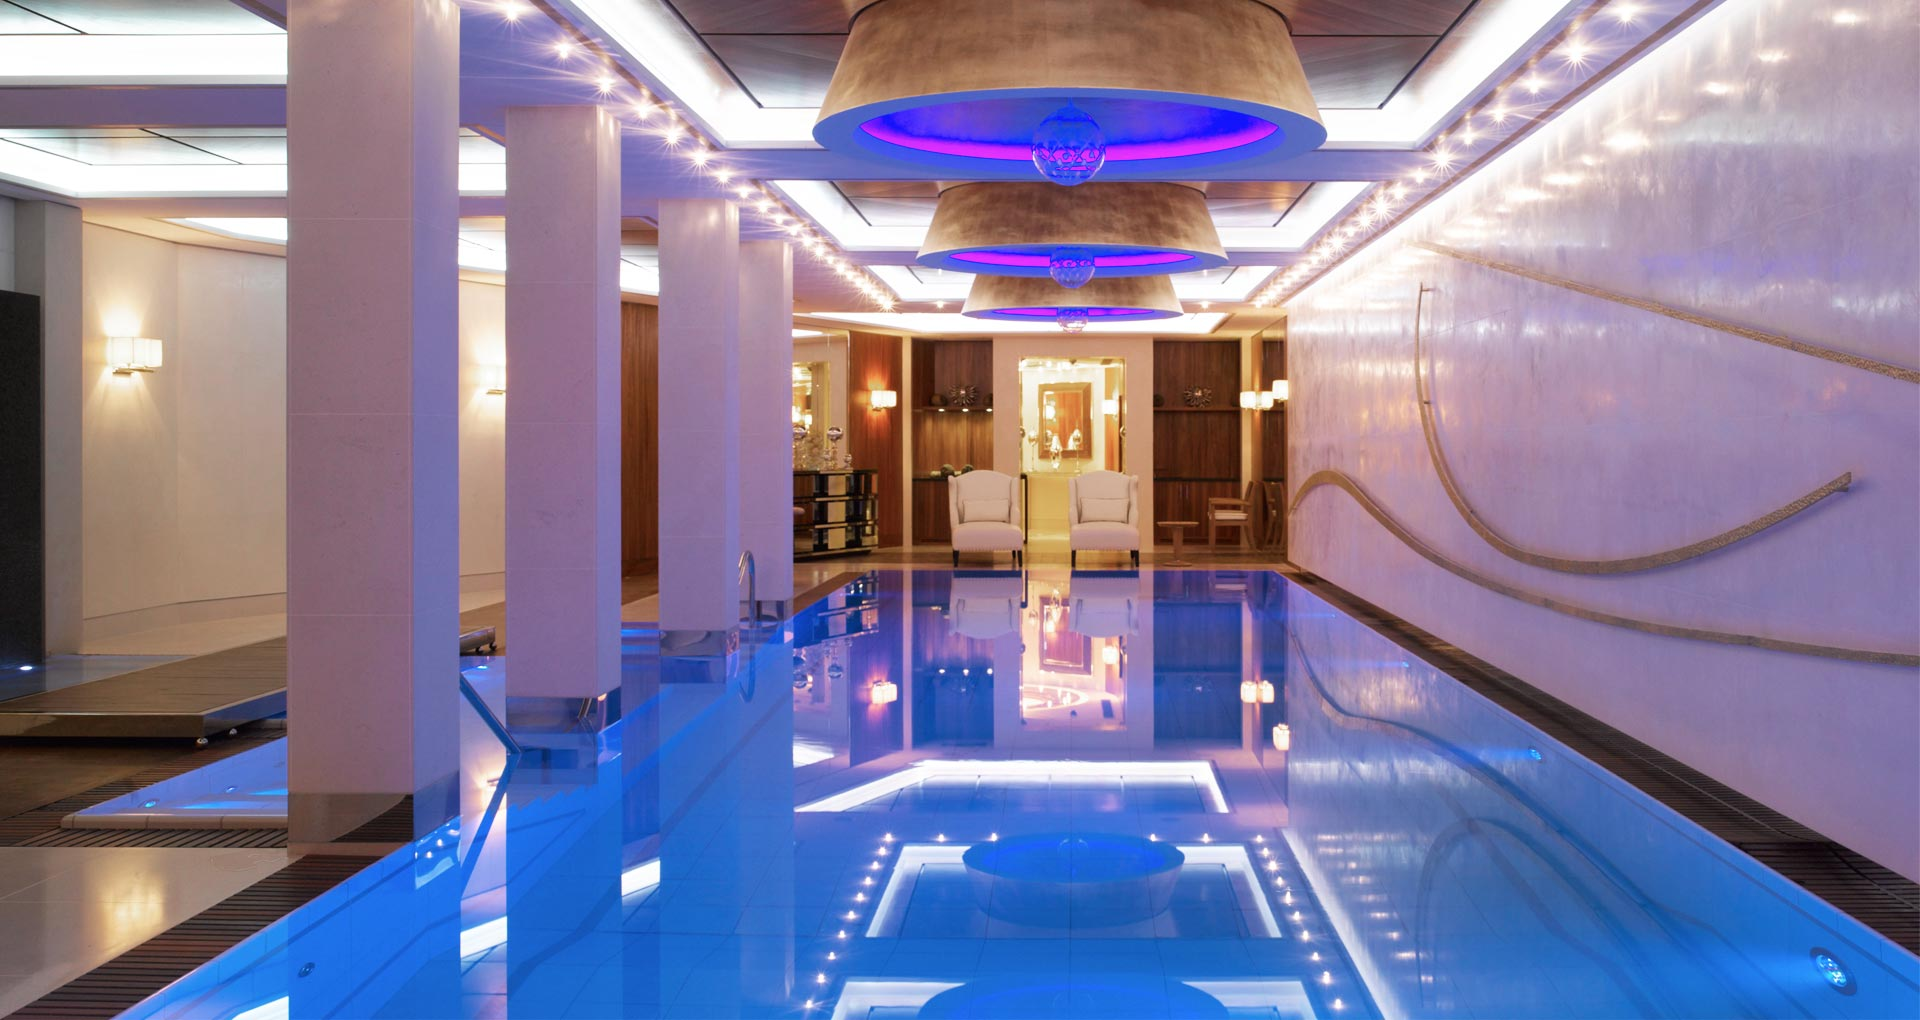 - London, UK  -  Town House  -  An impressive pool within a basement spa complex of a grand private residence